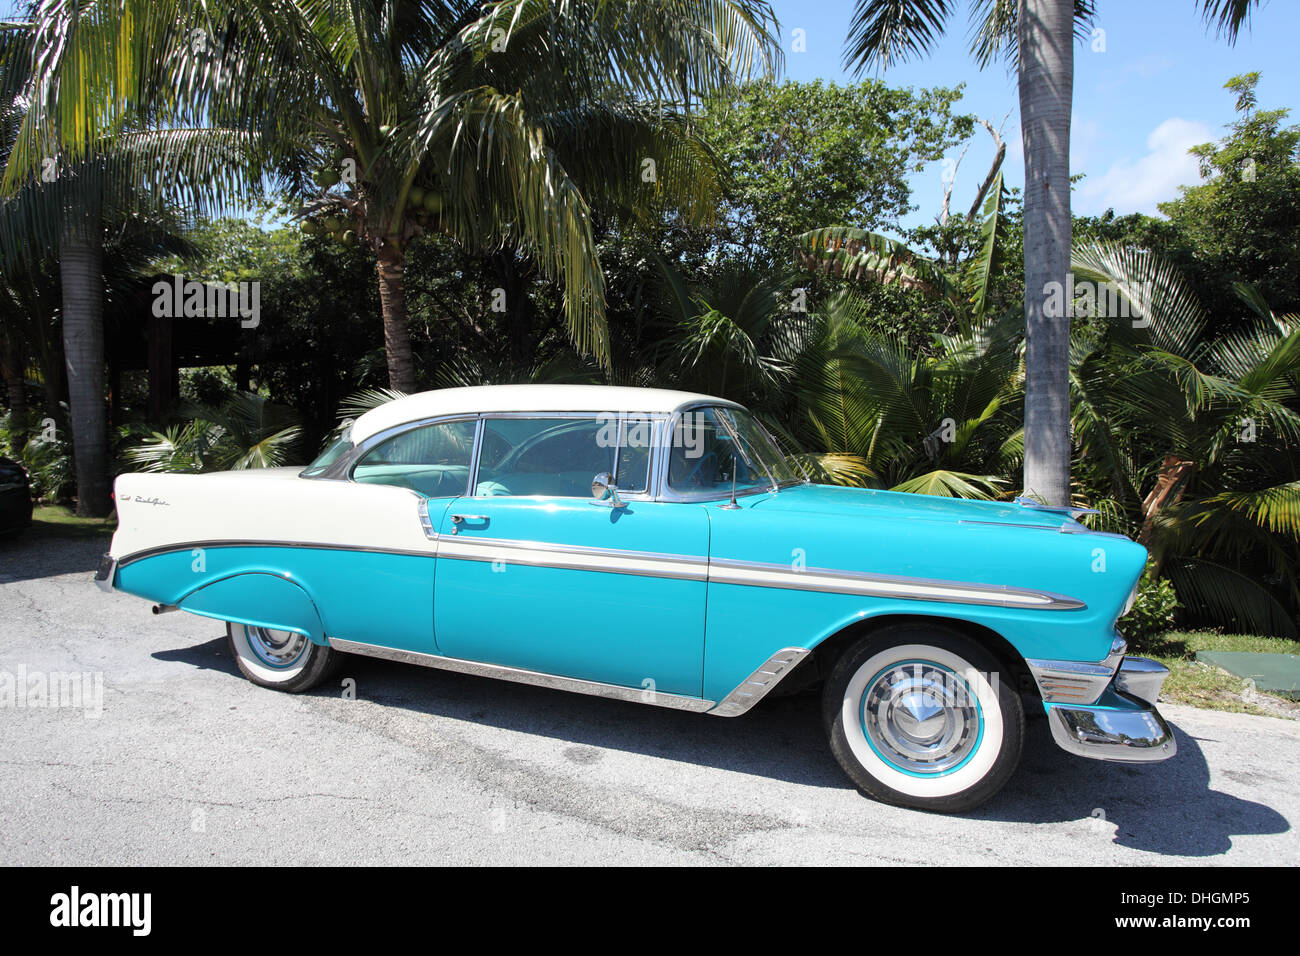 Blue and white Chevrolet Bel air classic American car Stock Photo ...